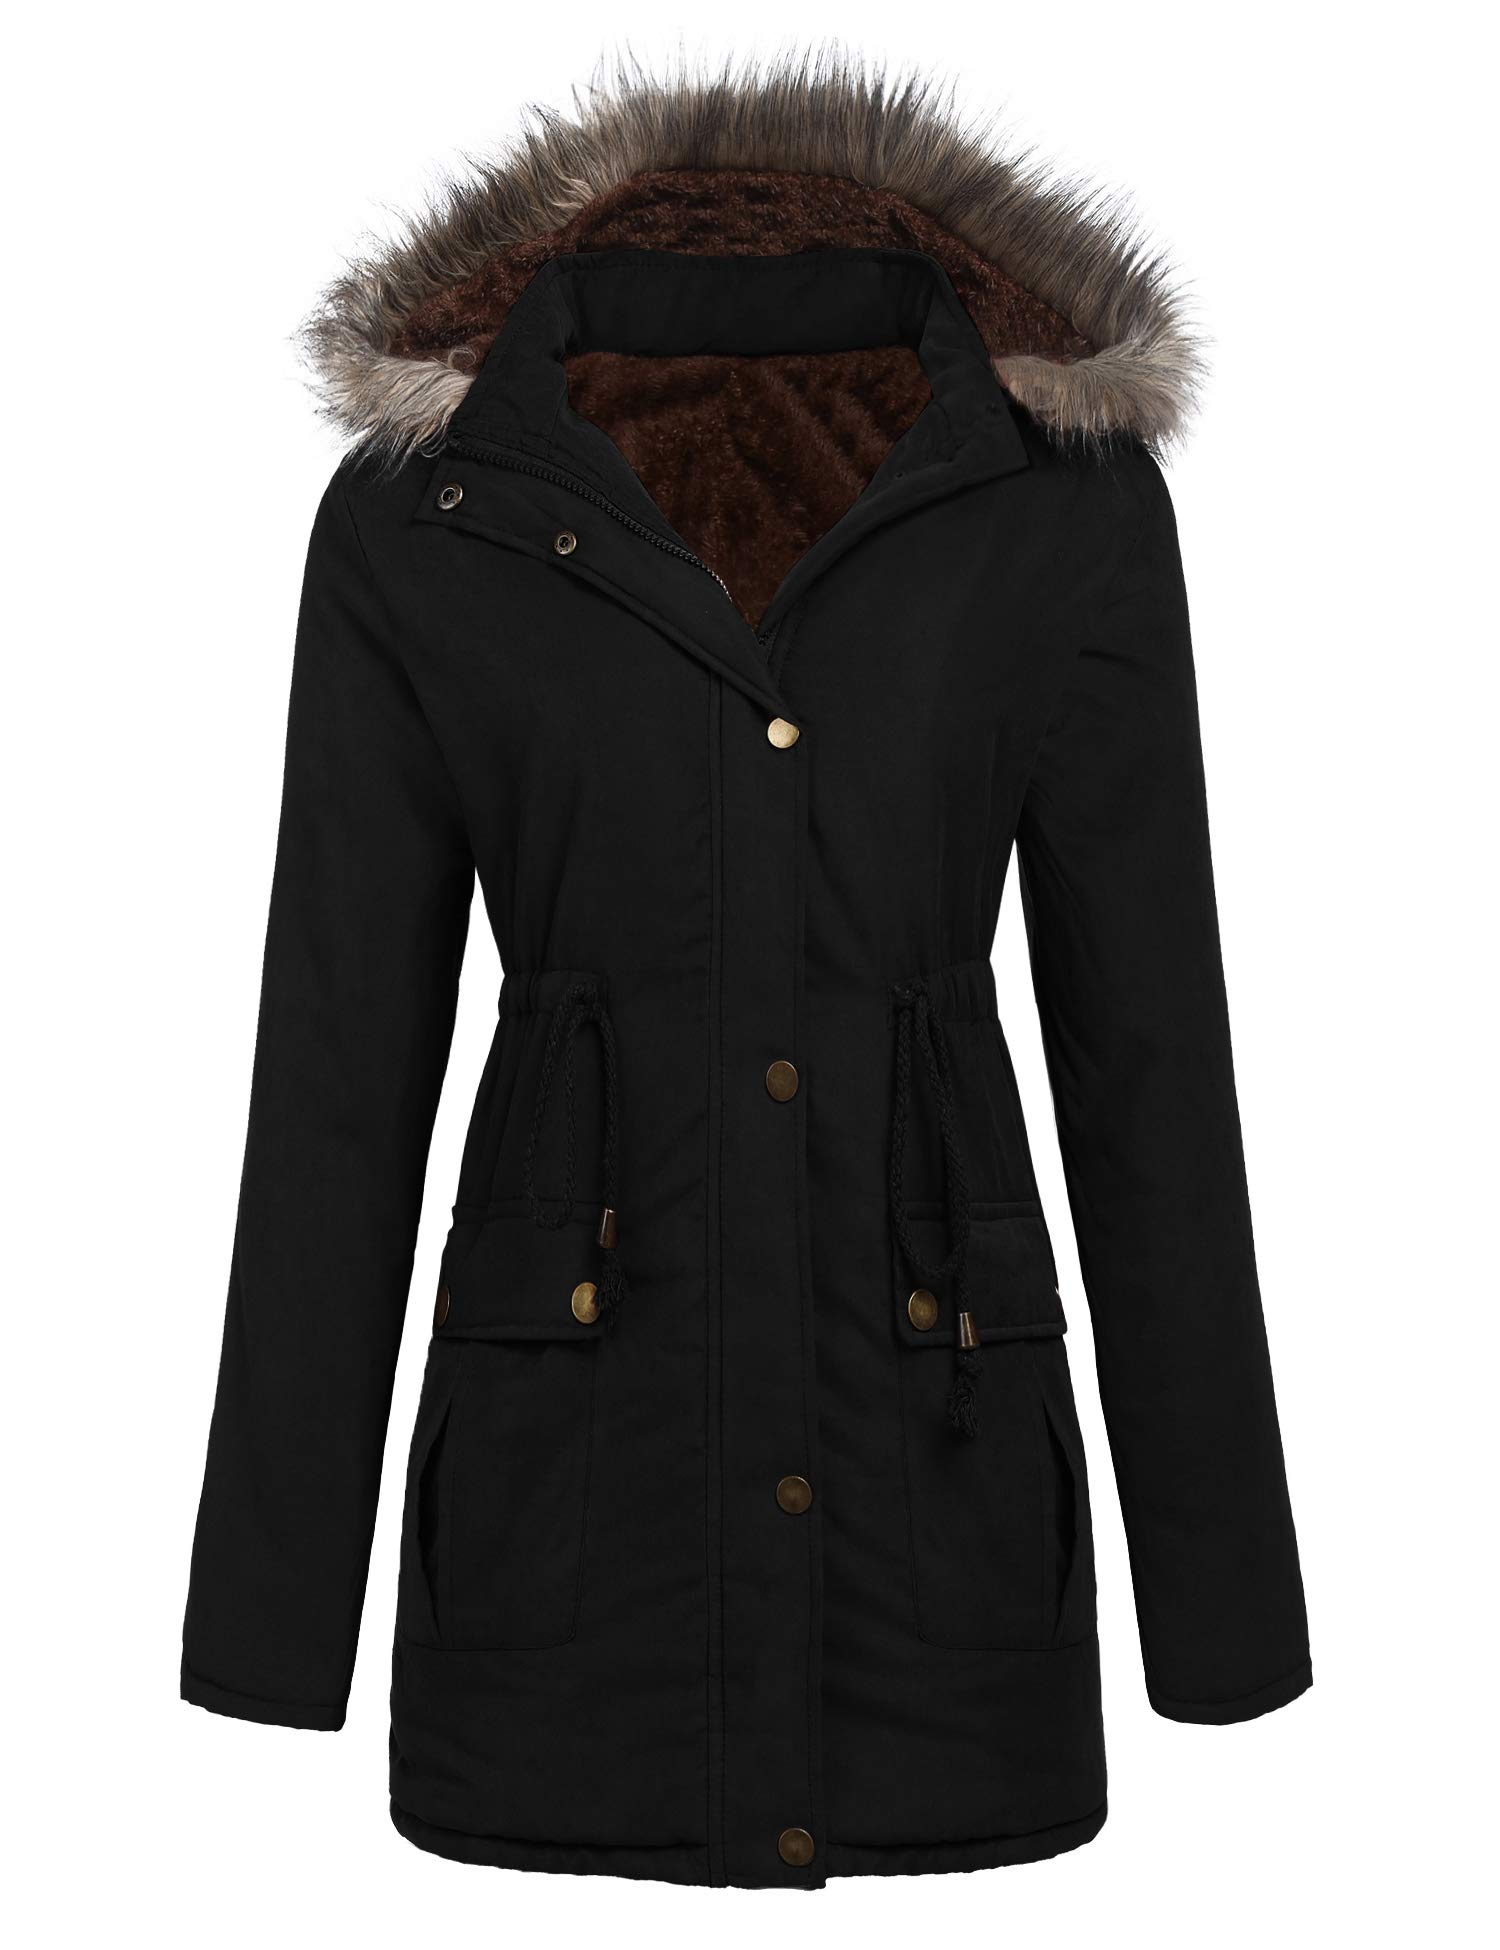 SoTeer Womens Plus Size Winter Coat Warm Faux Fur Lined Parka Jacket with Hood (Black, L) by SoTeer